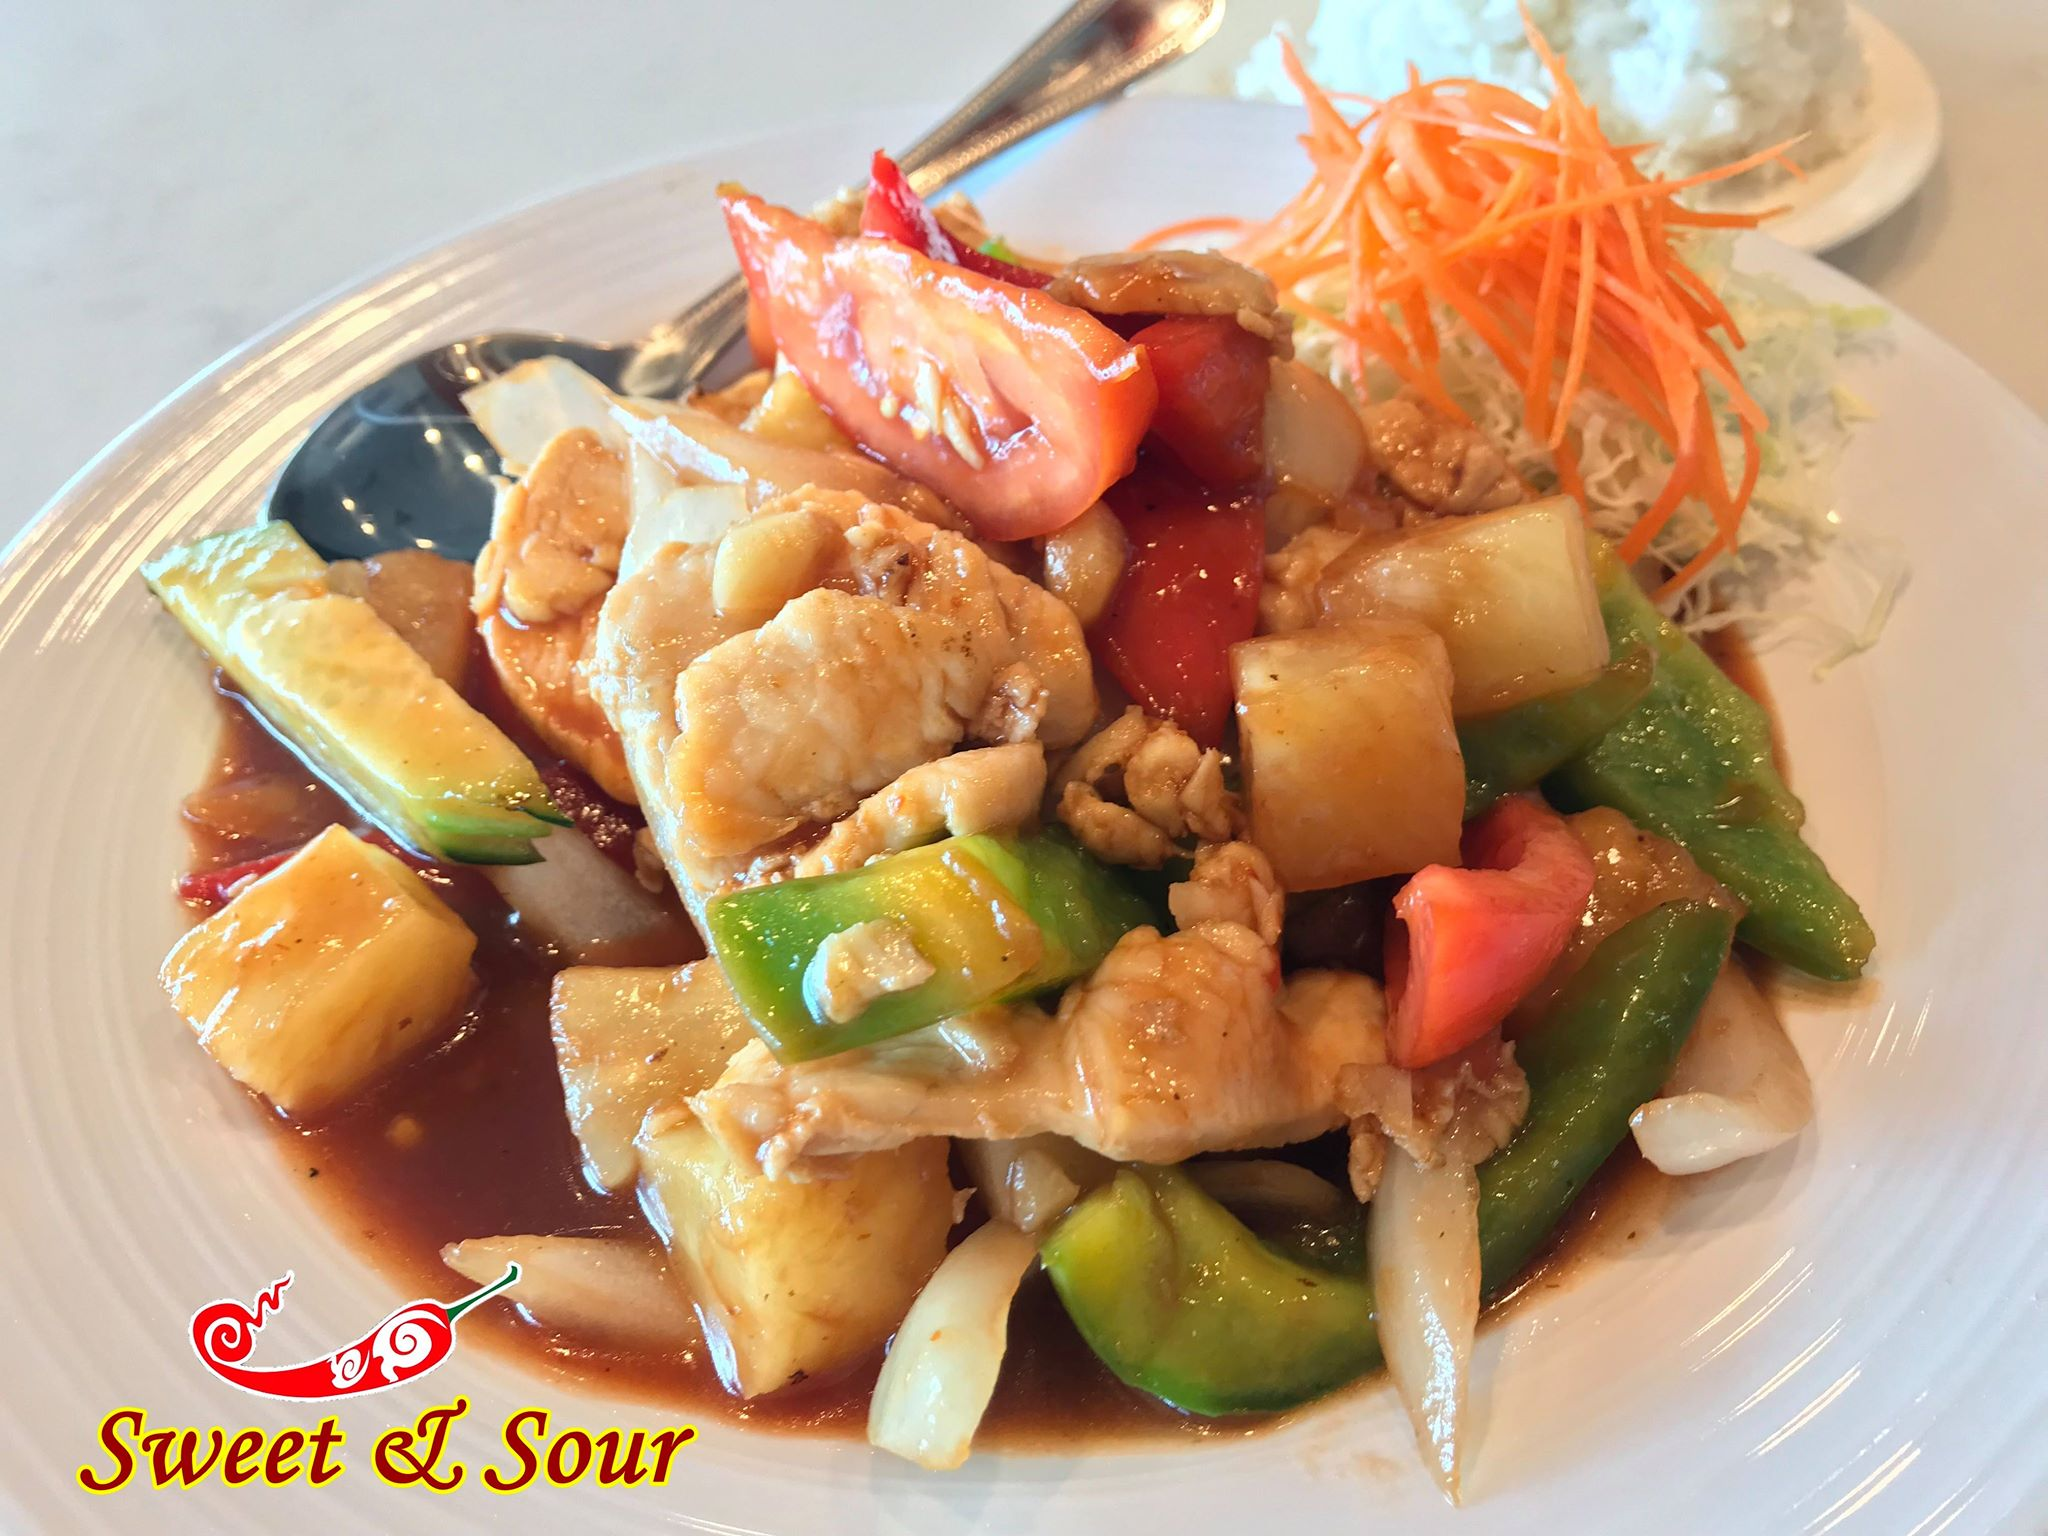 Sweet and Sour Image